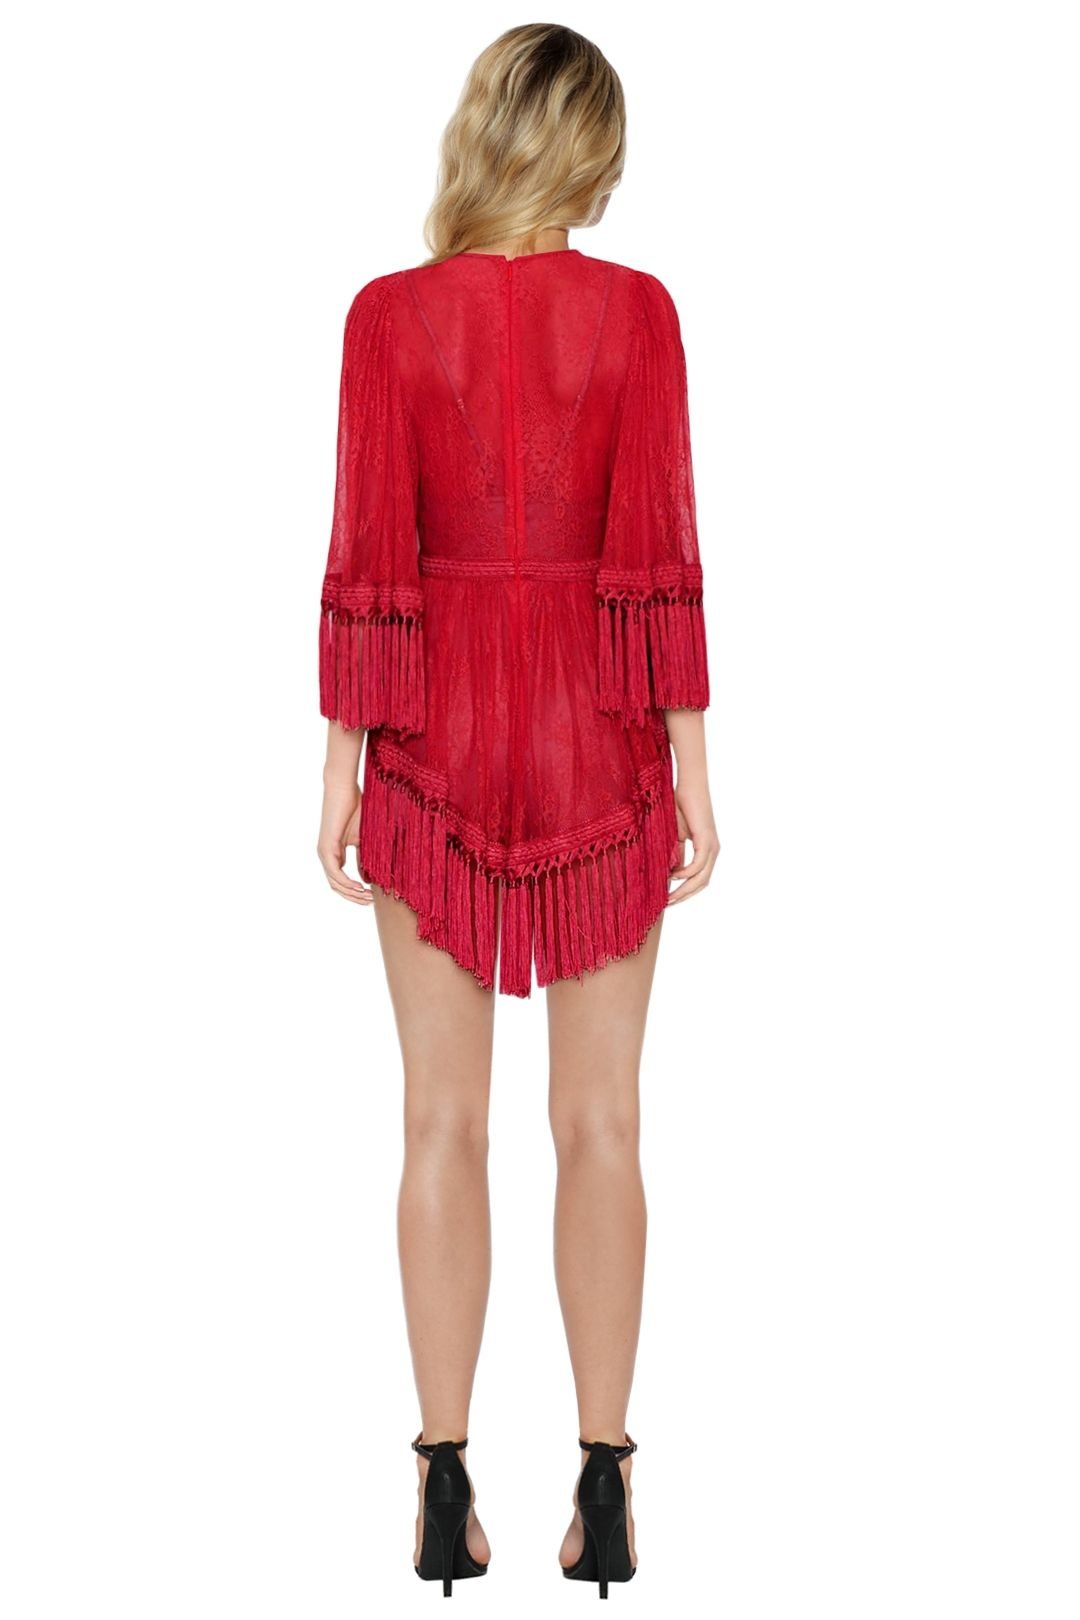 Alice McCall - Are You Ready Girl Mini Dress - Red - Back